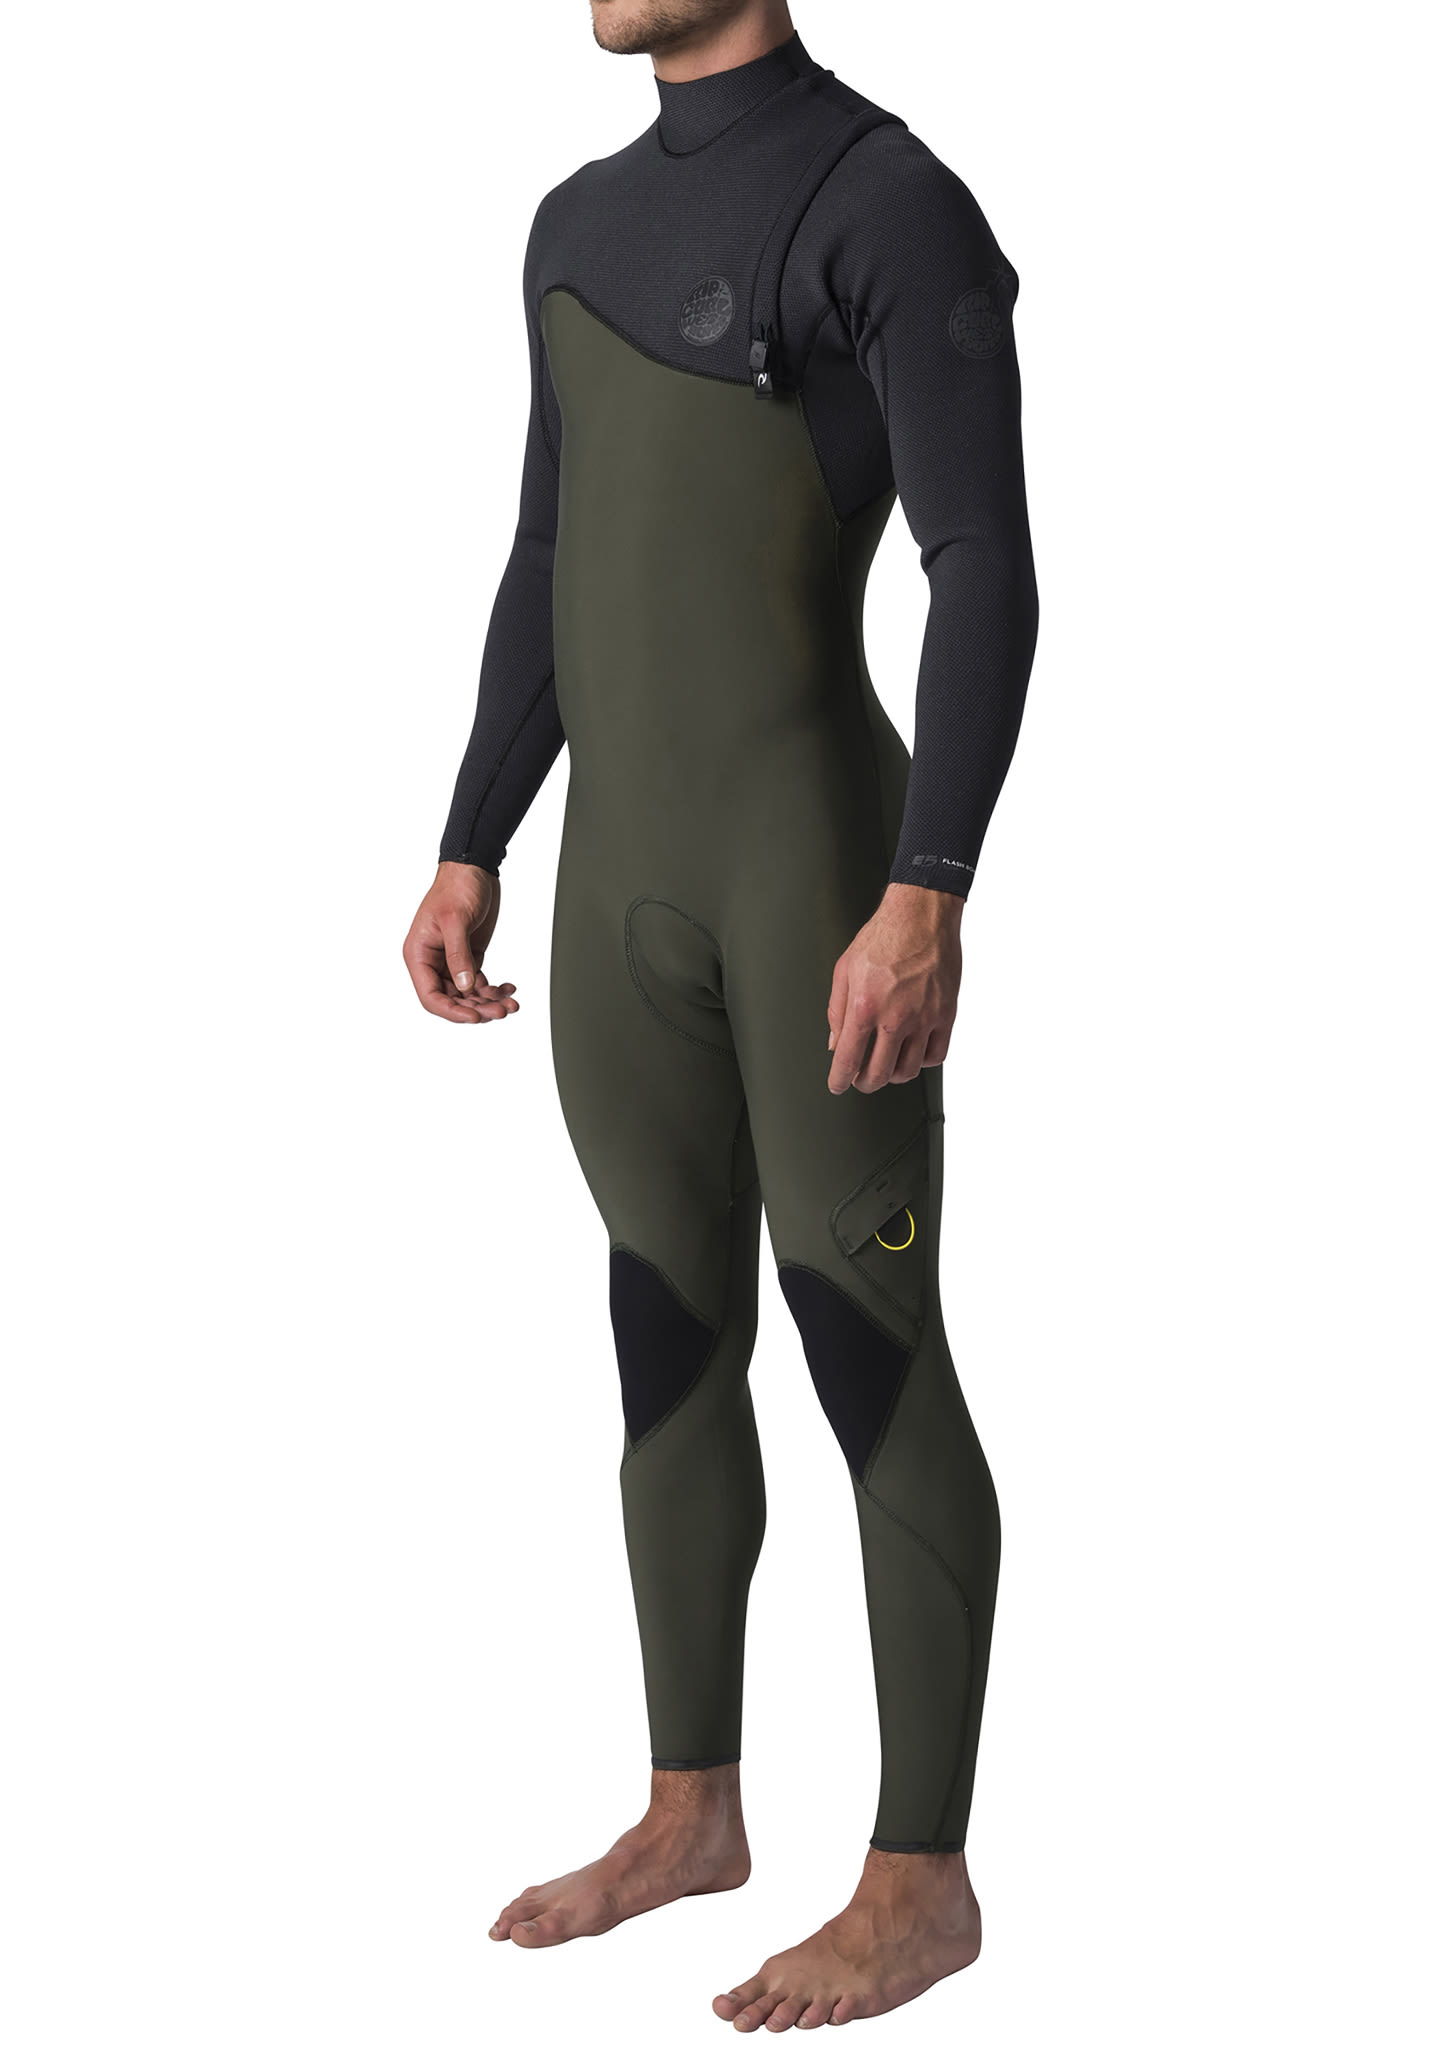 7bdb2790a4d6 Rip Curl Flashbomb 3/2mm Zip Free - Wetsuit for Men - Green - Planet Sports